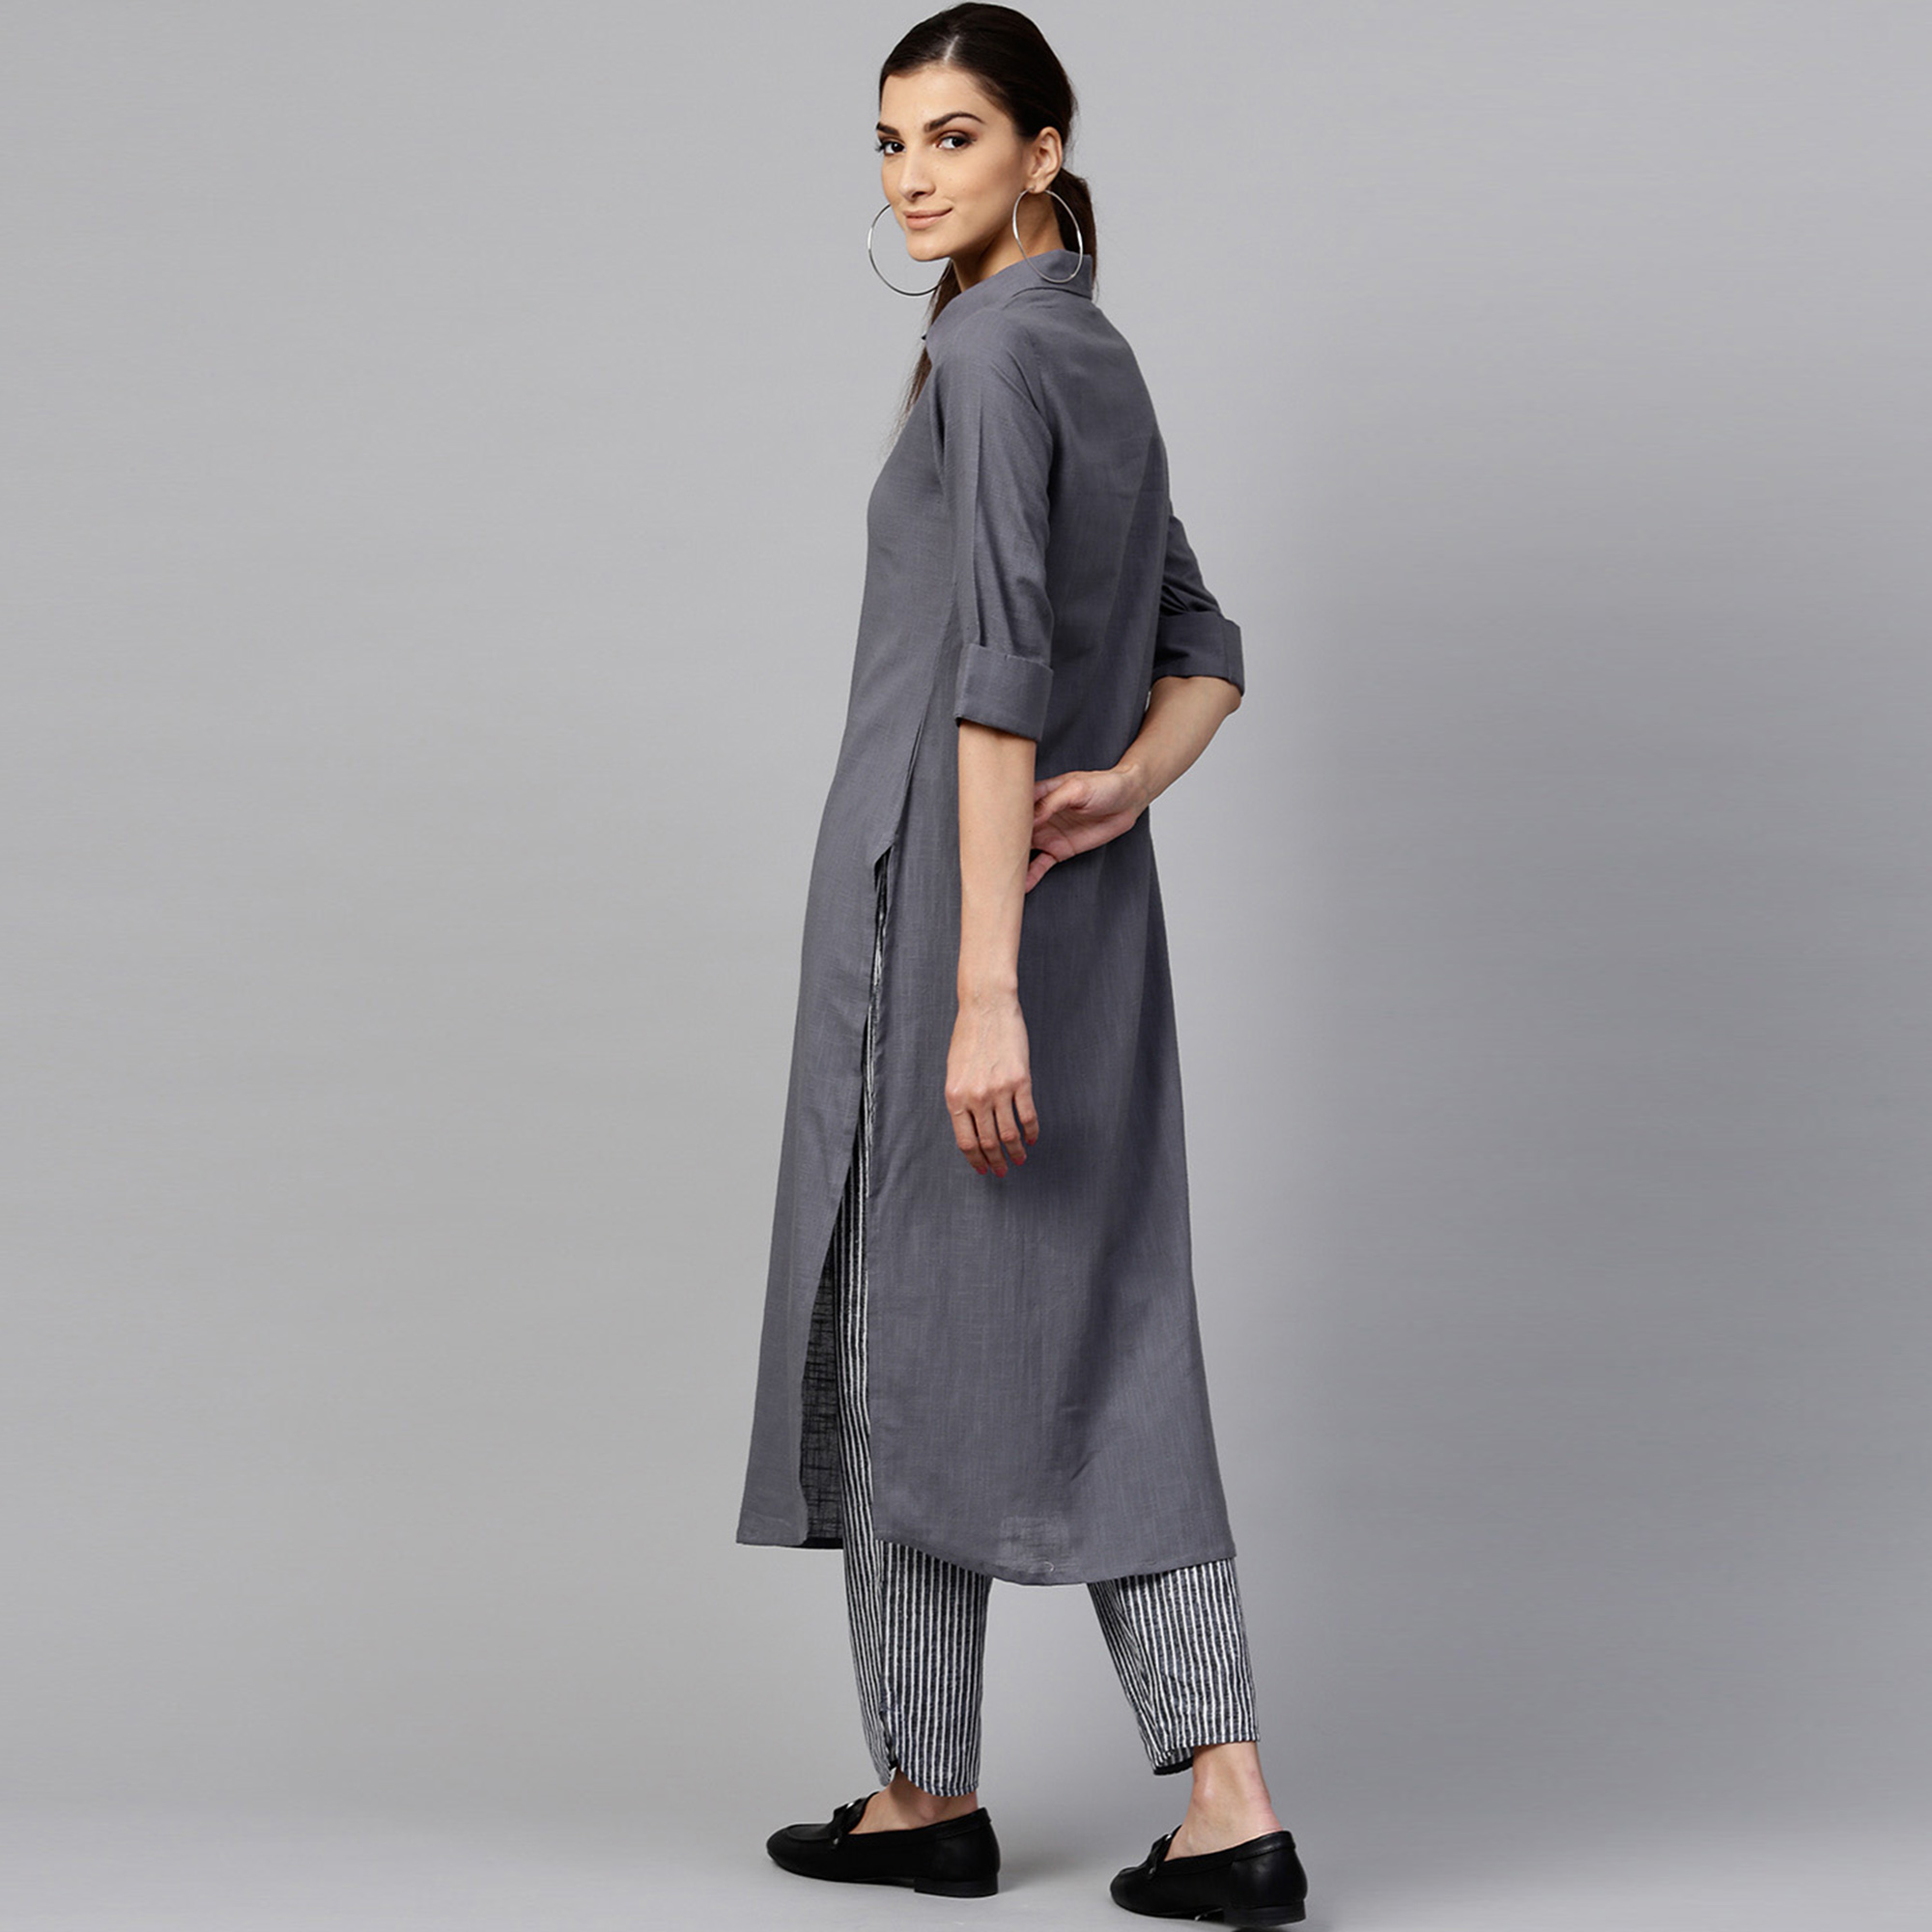 Desirable Dark Gray Colored Casual Wear Cotton Kurti And Bottom Set